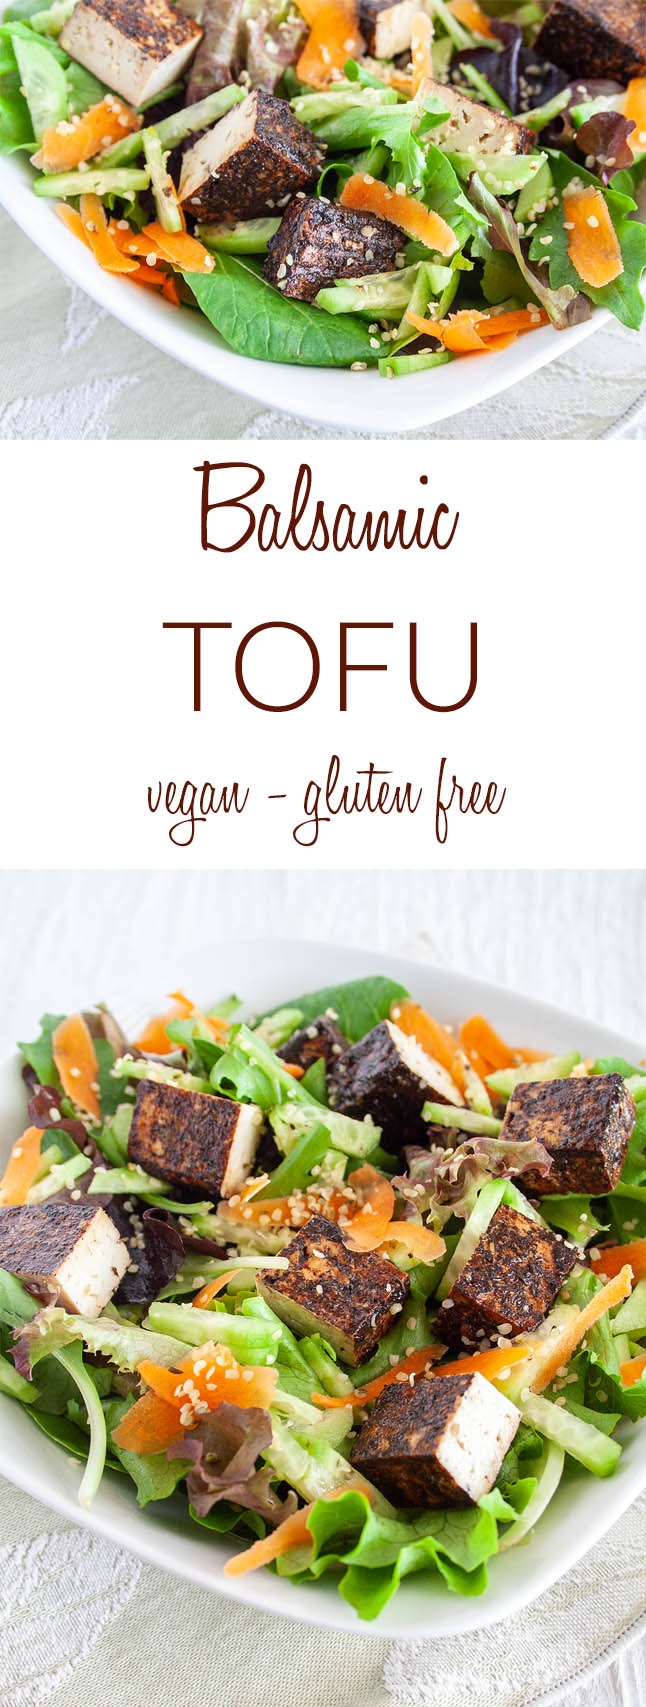 Balsamic Tofu collage photo with text.